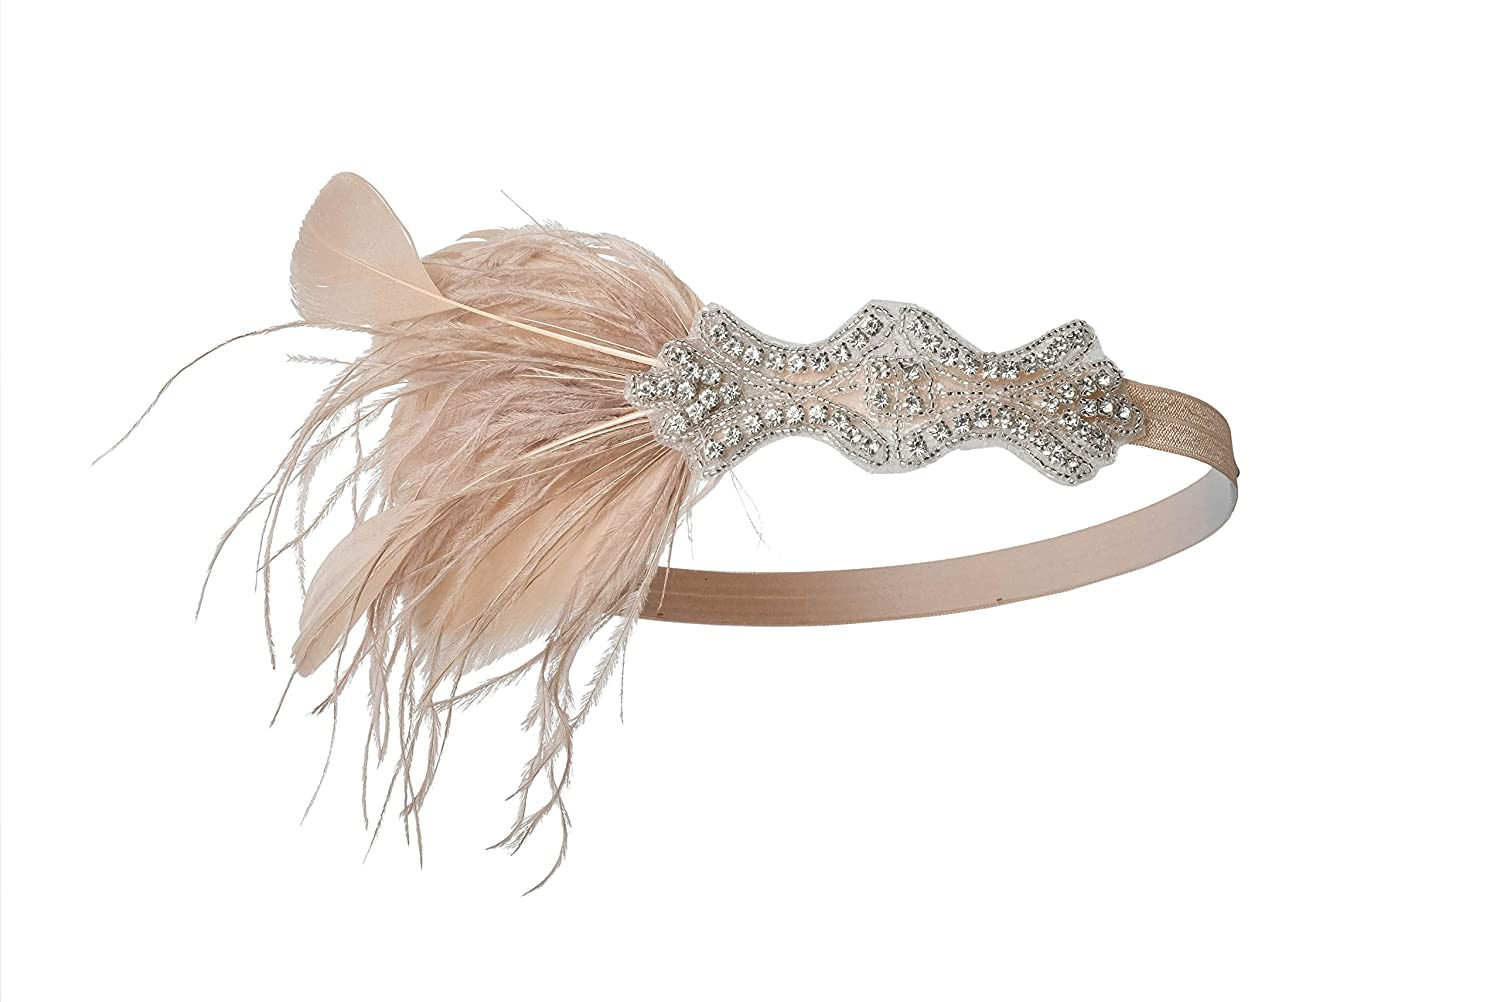 1920s Flapper Headband, Gatsby Headpiece, Wigs 1920s Headpiece Roaring 20s Great Gatsby Headband Flapper Accessories for Women $10.99 AT vintagedancer.com